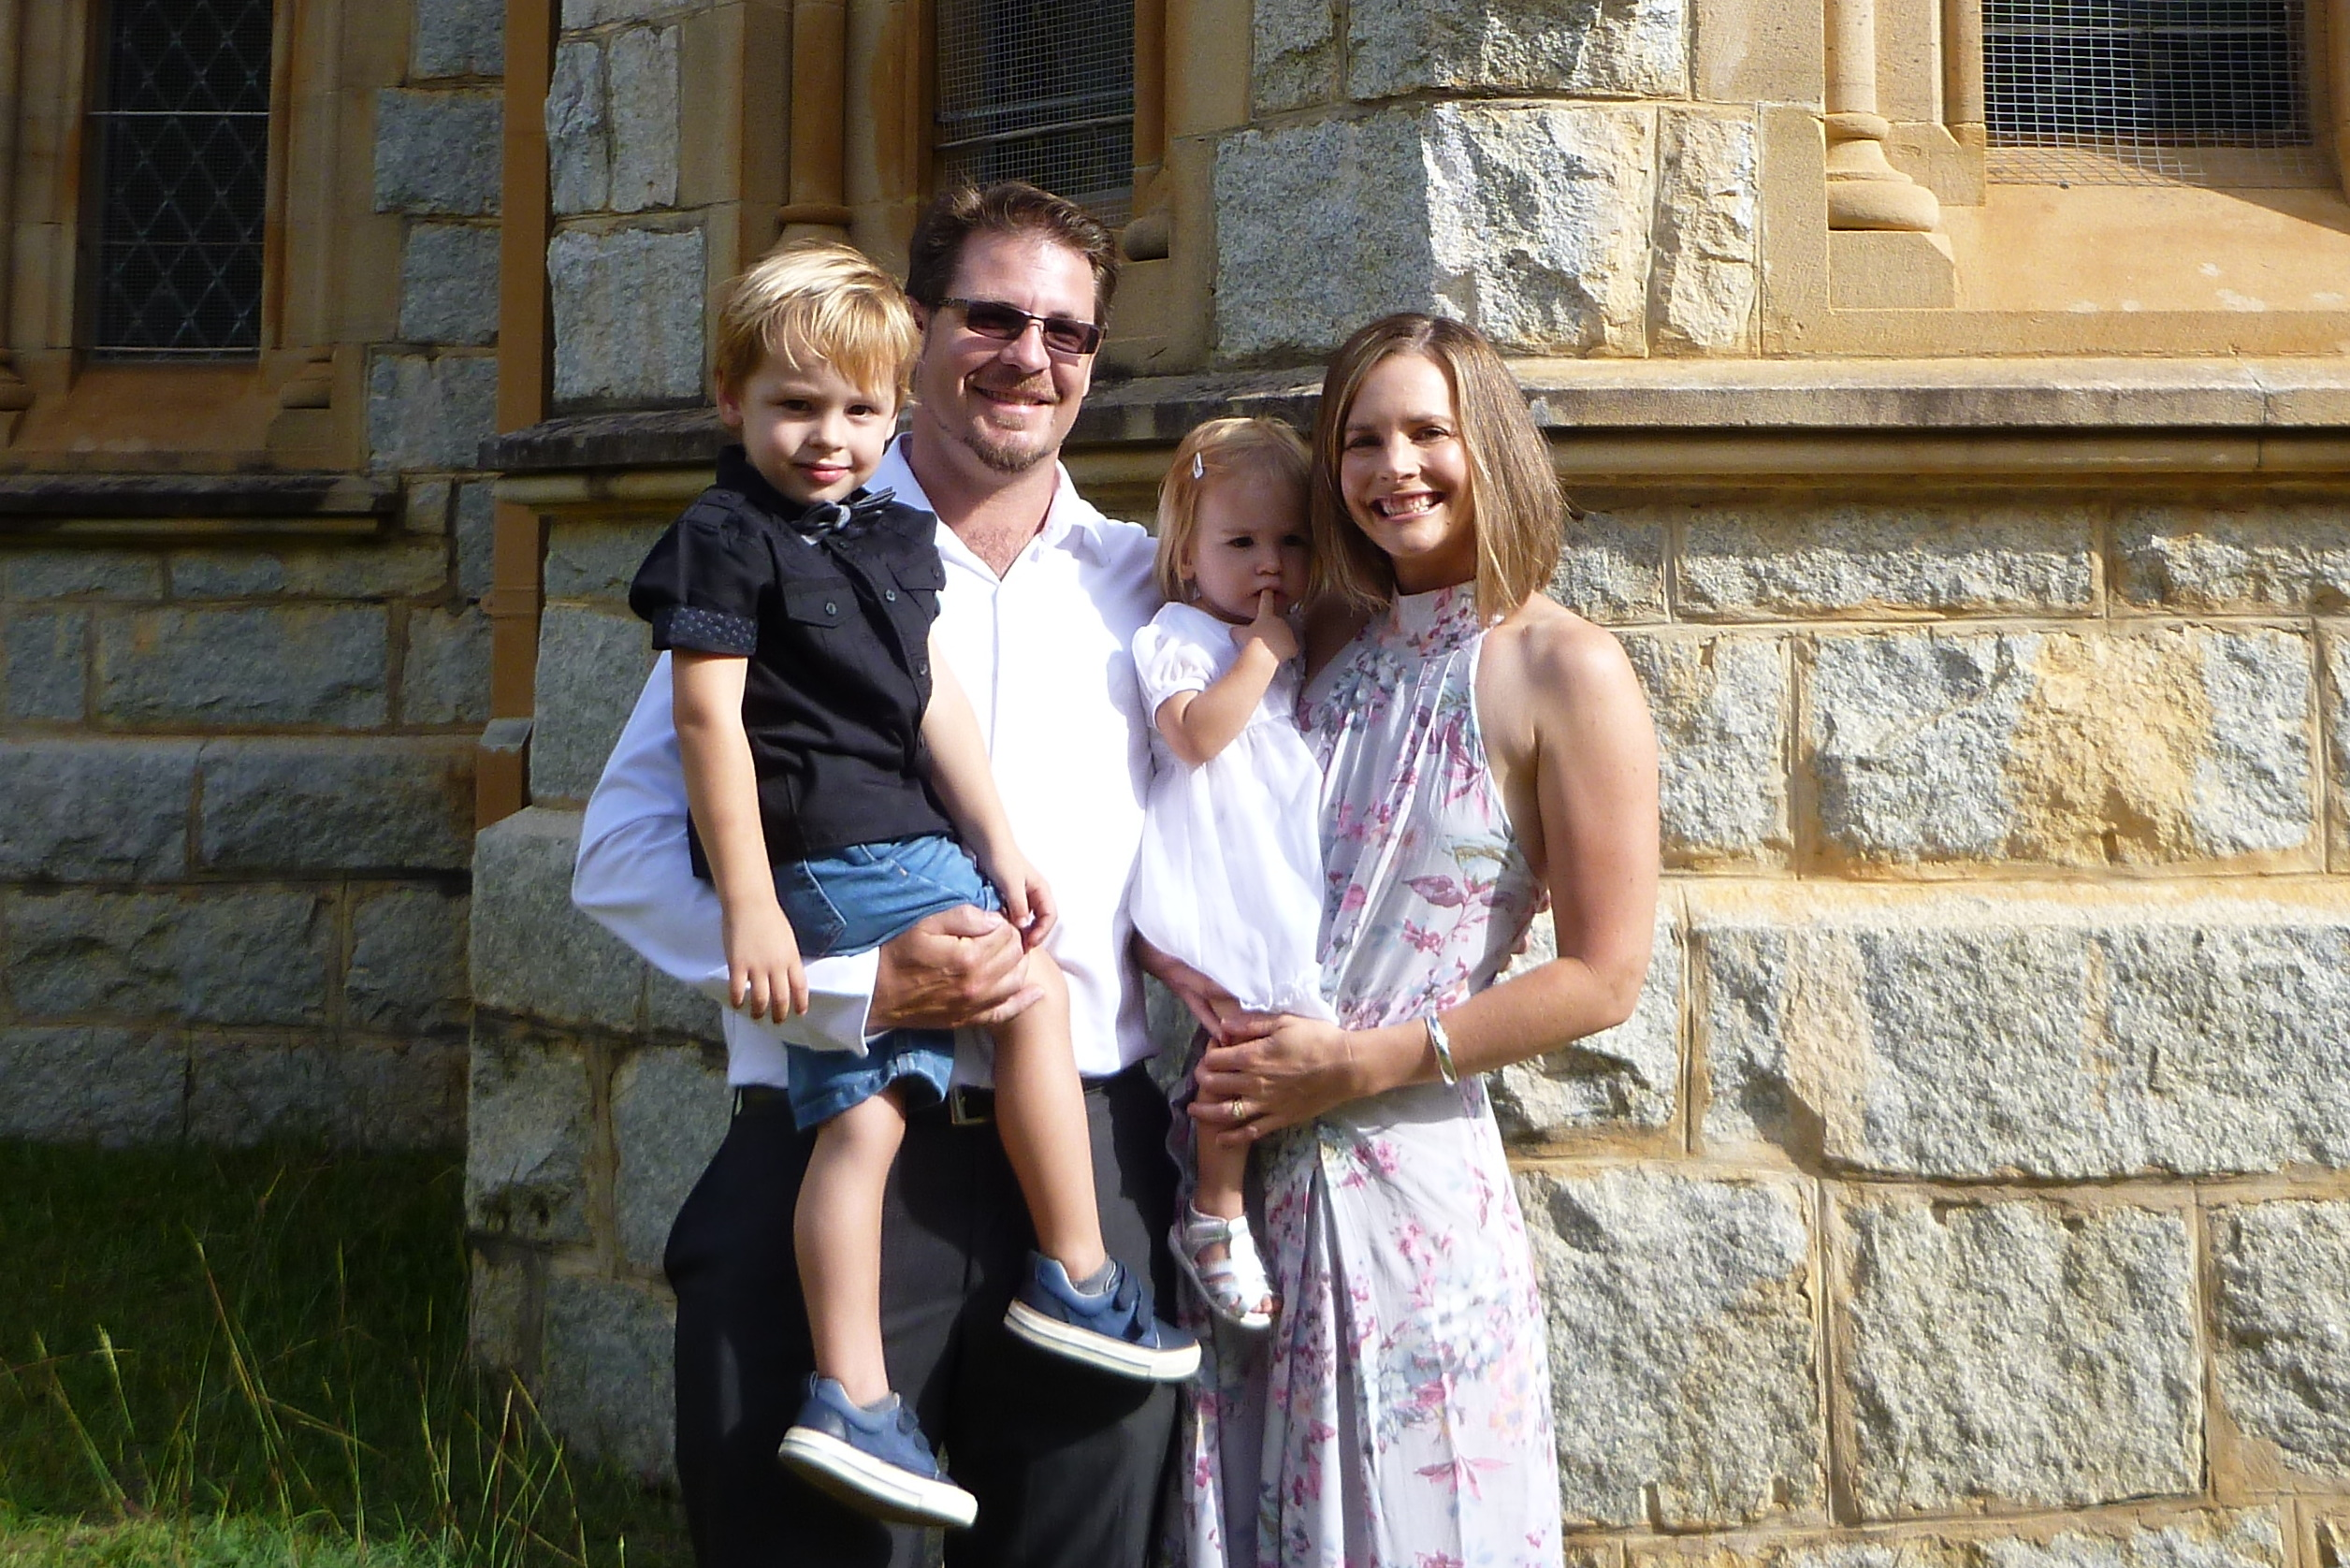 infertility ivf, Our Infertility Journey – Part 5: IVF / ICSI – The Final Chapter, The Birthing Journey